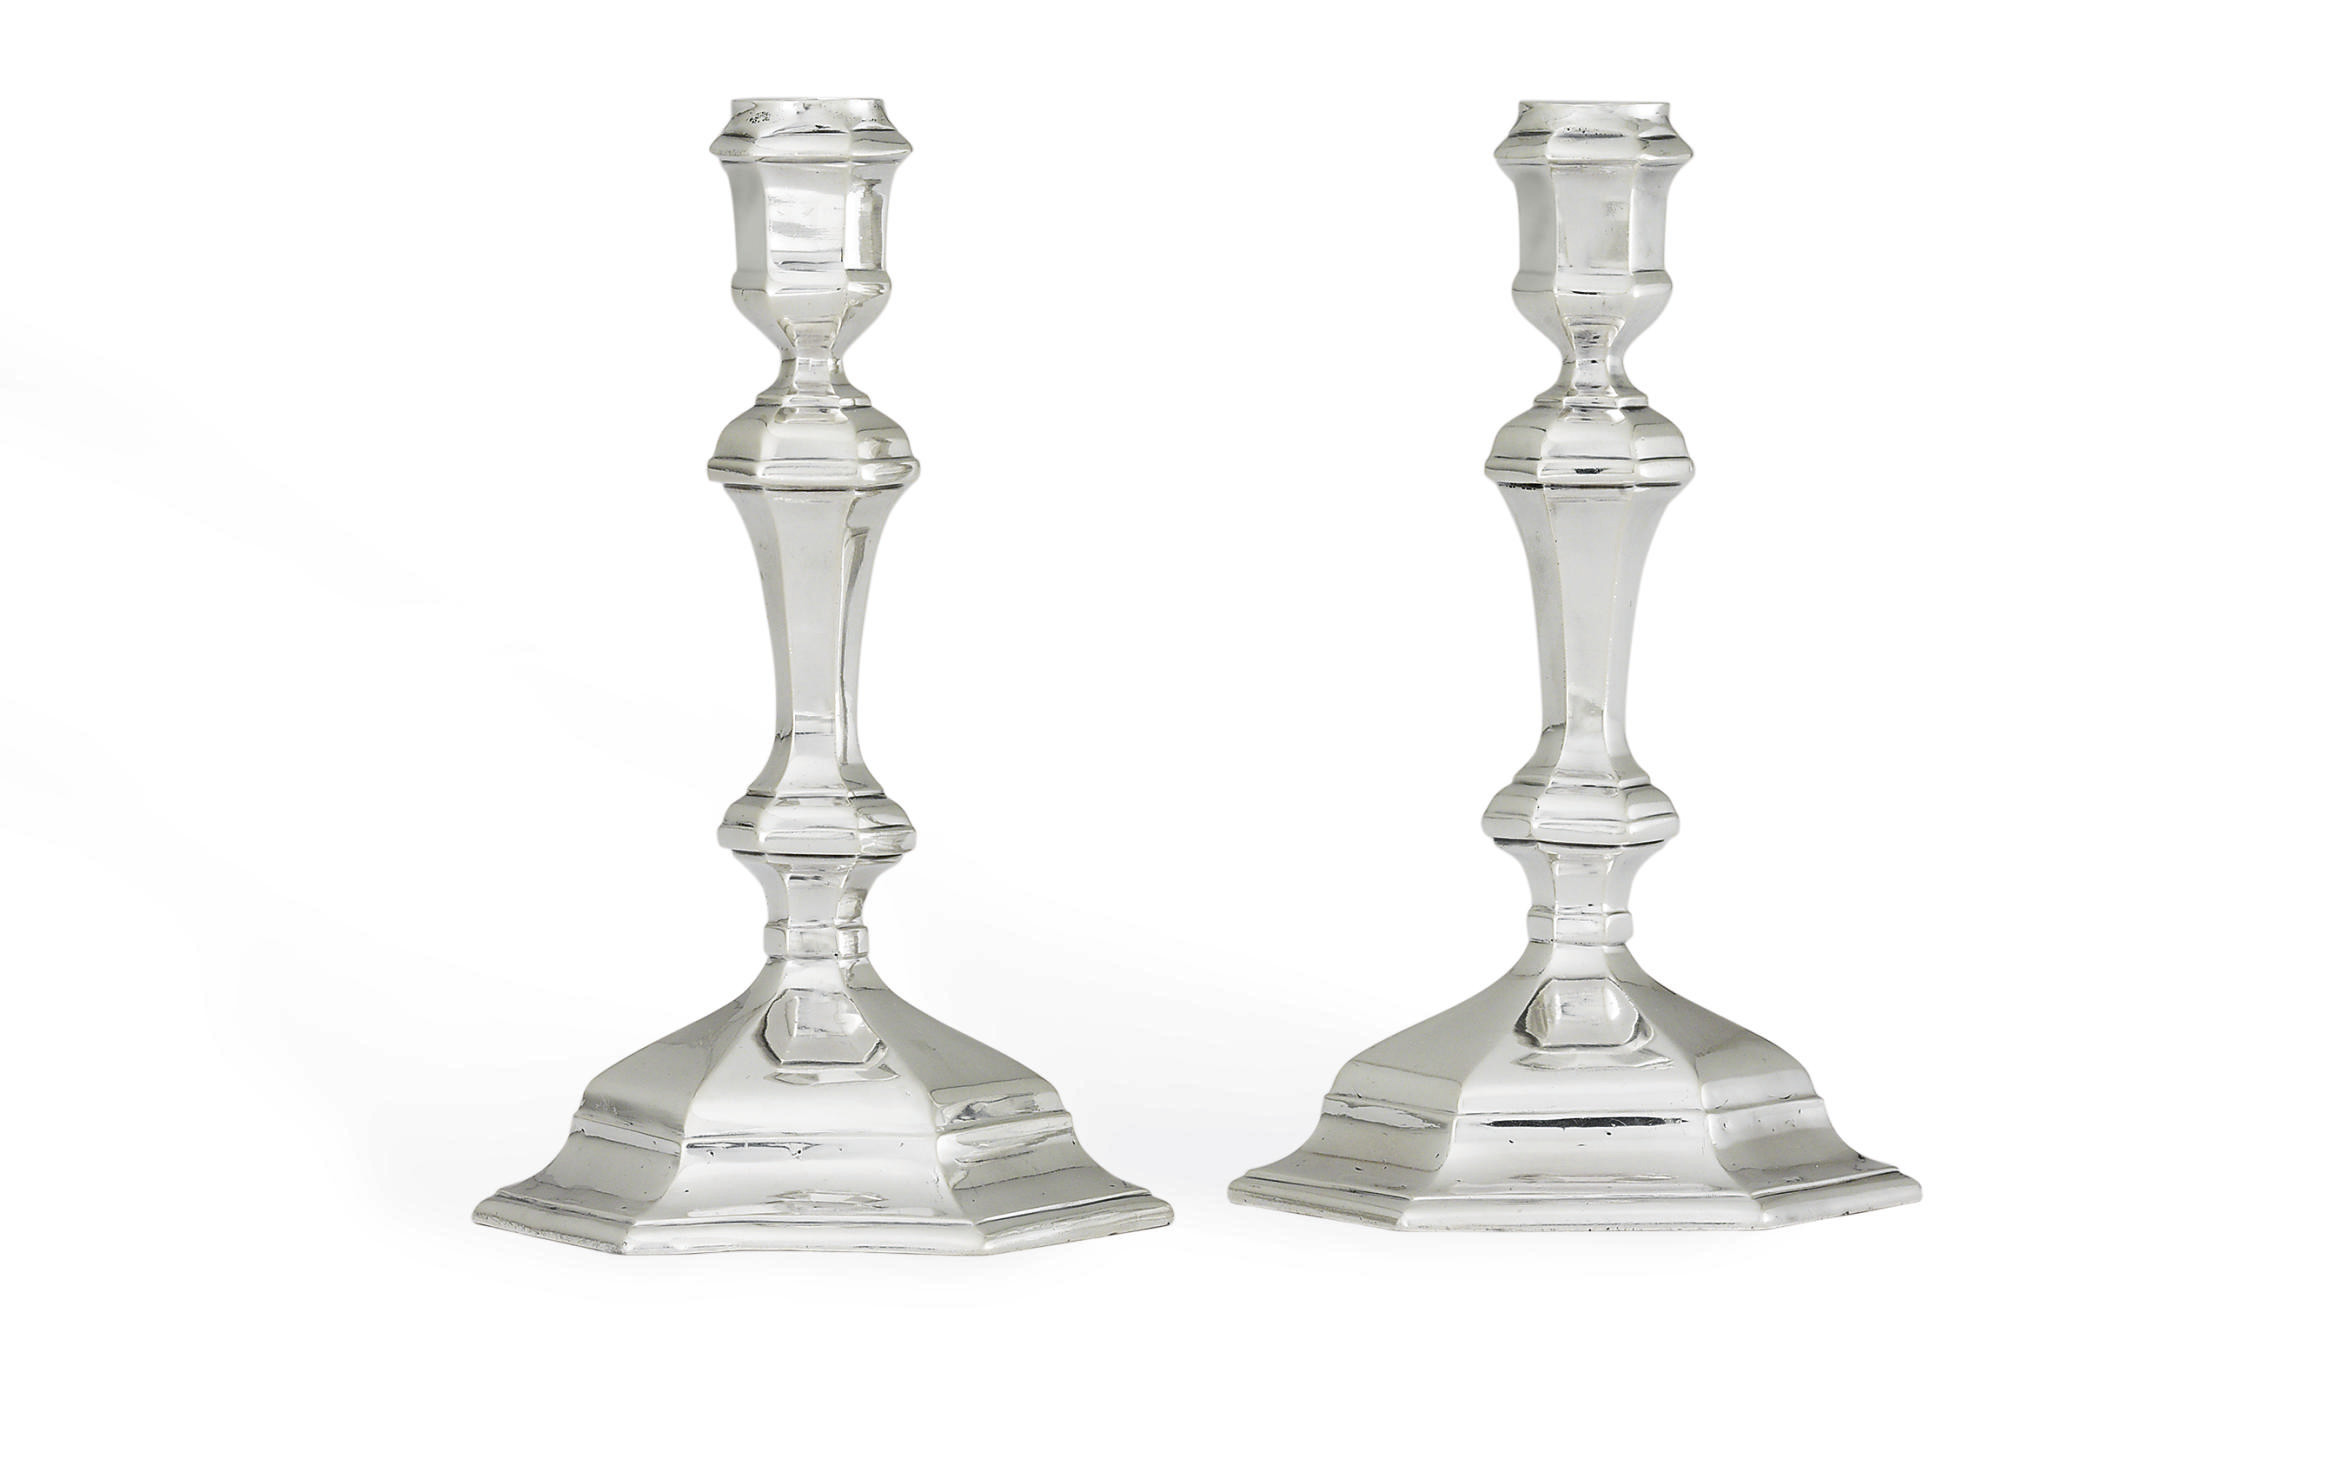 A PAIR OF GEORGE I SILVER CANDLESTICKS